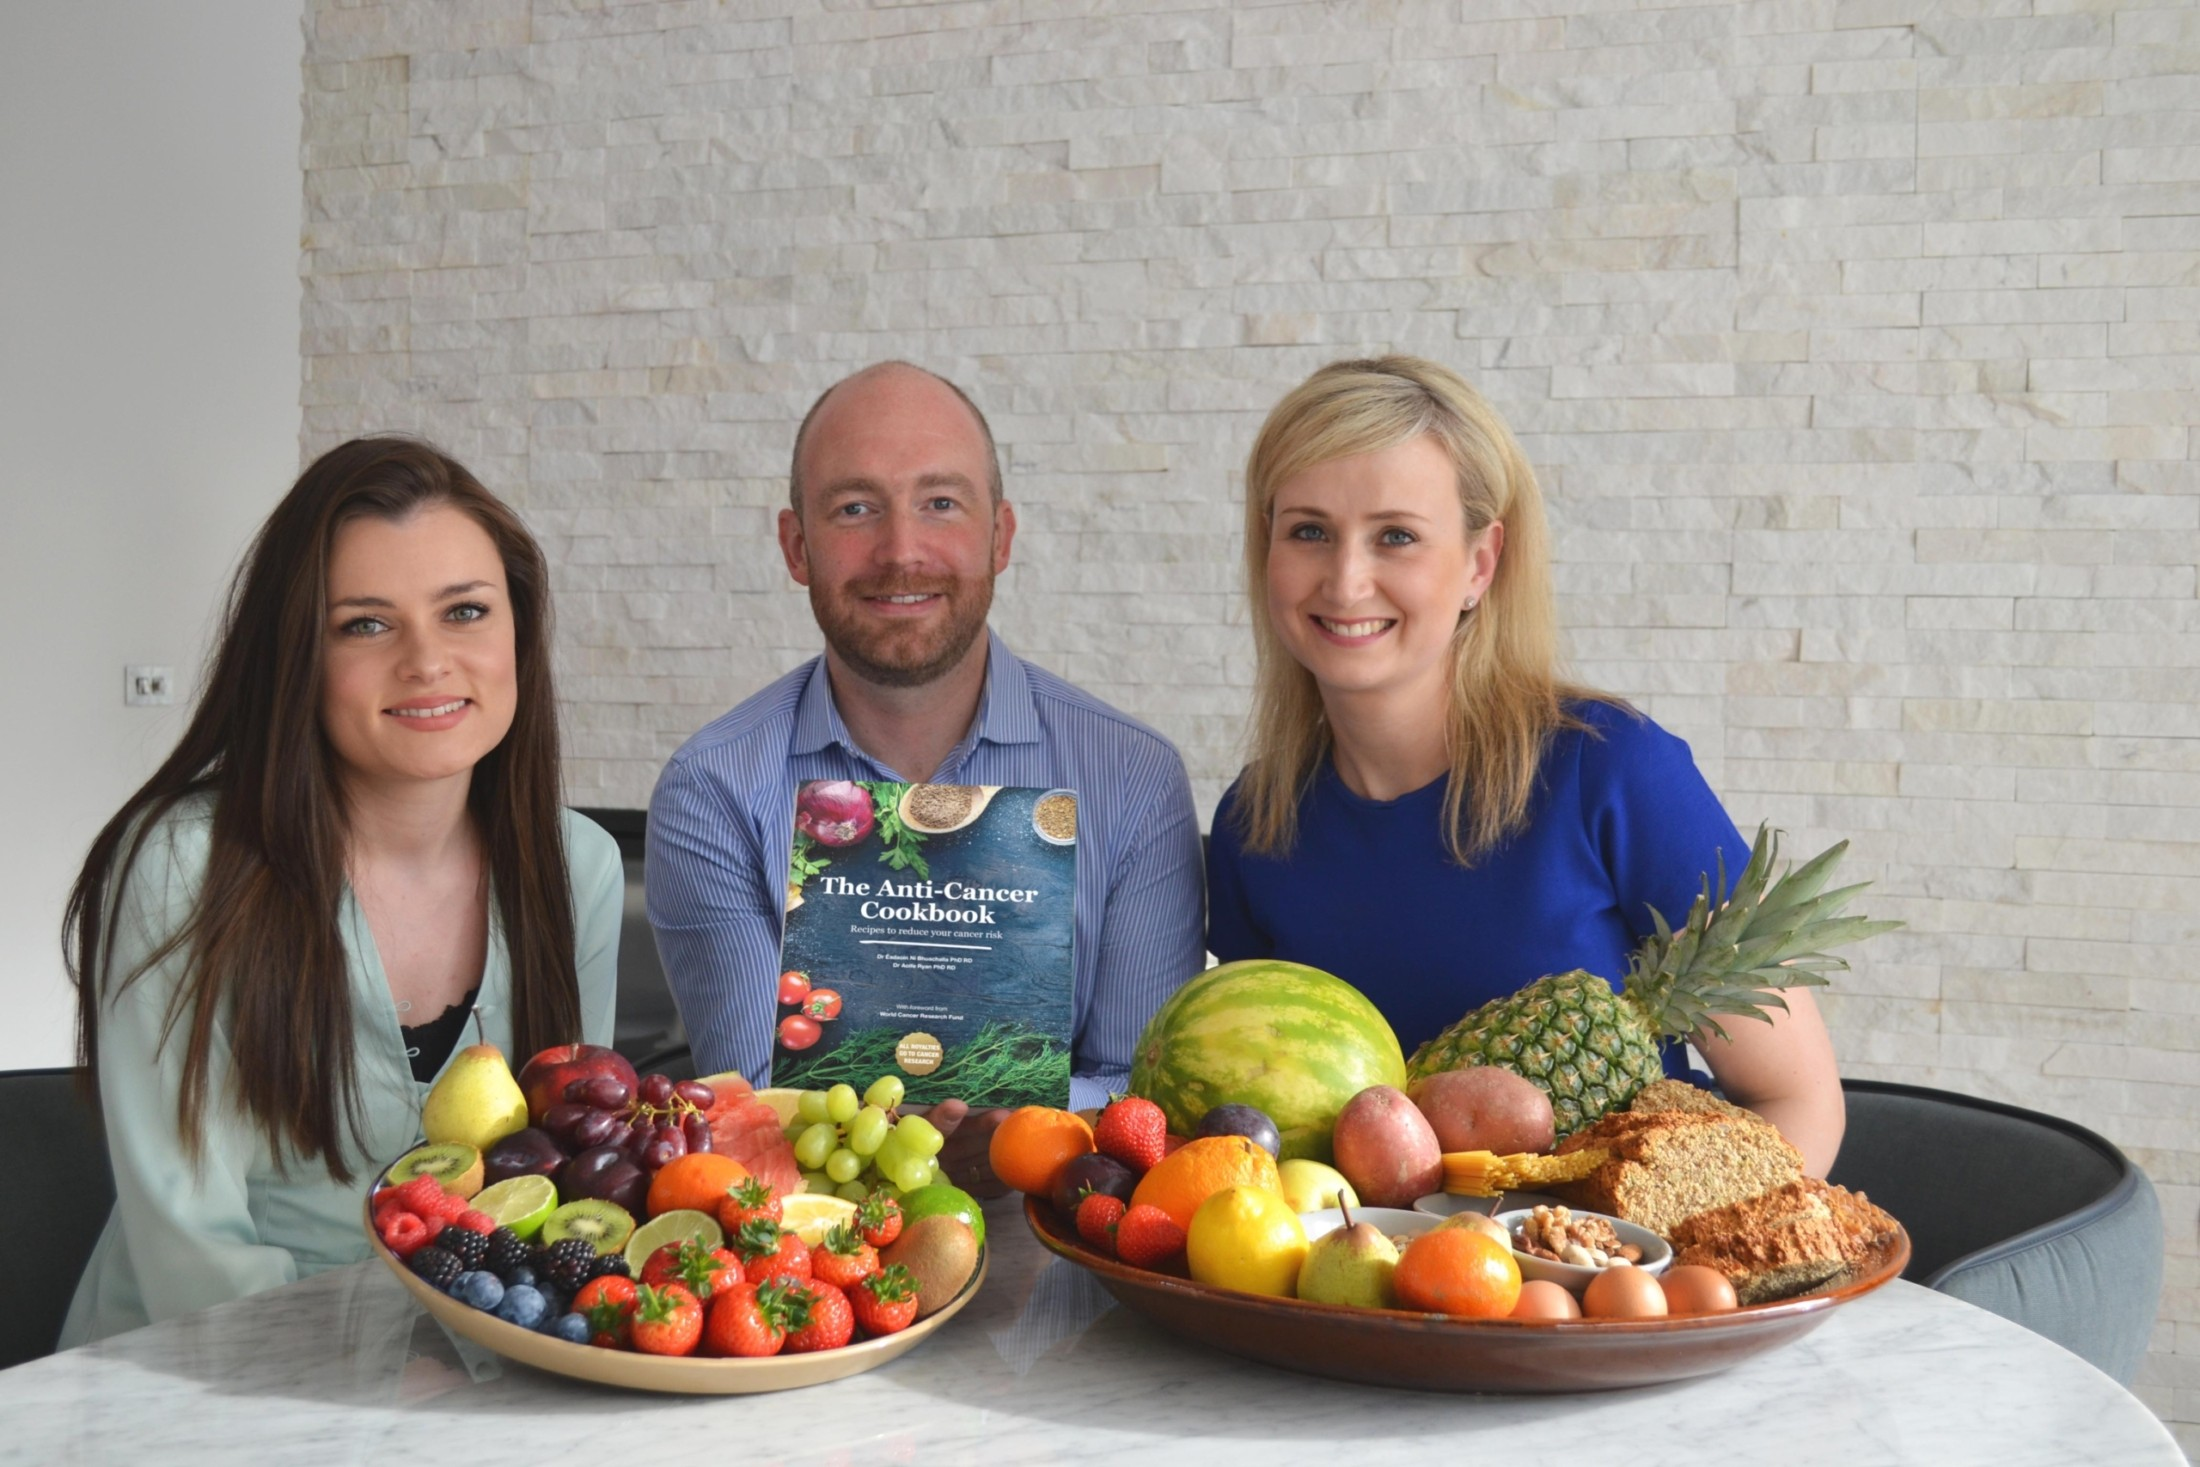 Healthy Eating Cookbook released for Cancer Prevention